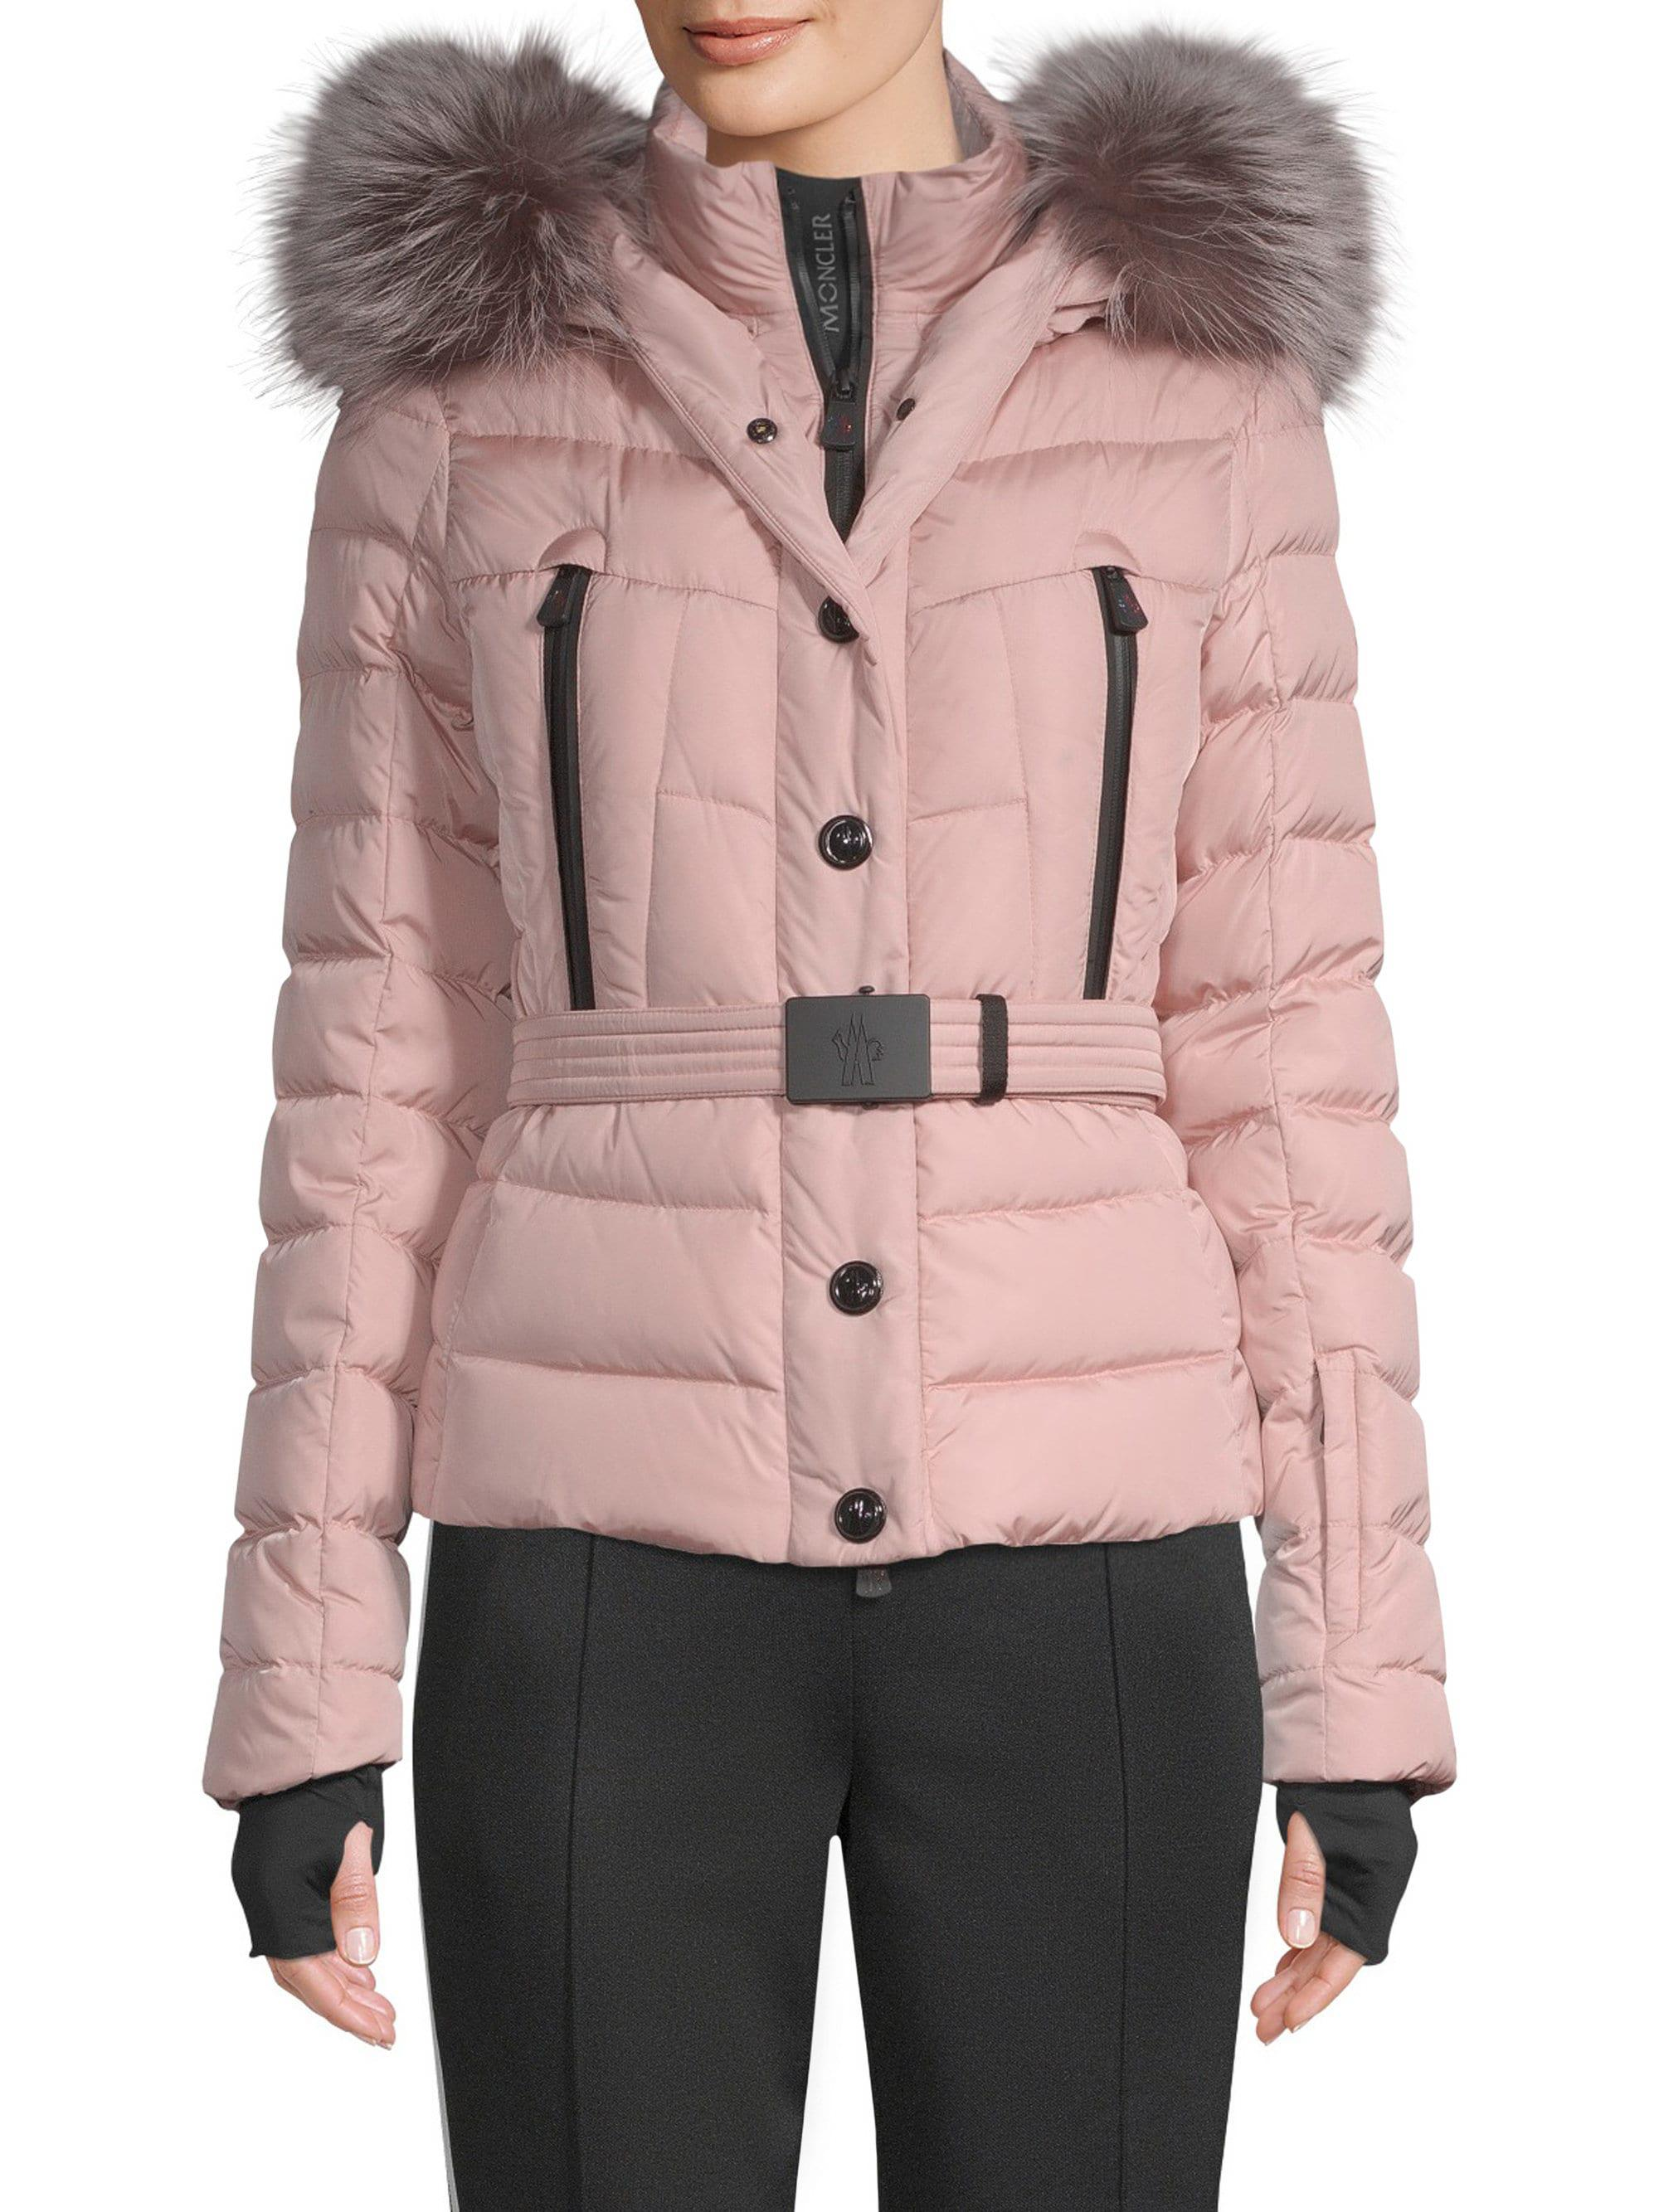 31ac4e1714 Lyst - Moncler Beverley Fur Trim Hooded Puffer Jacket in Pink